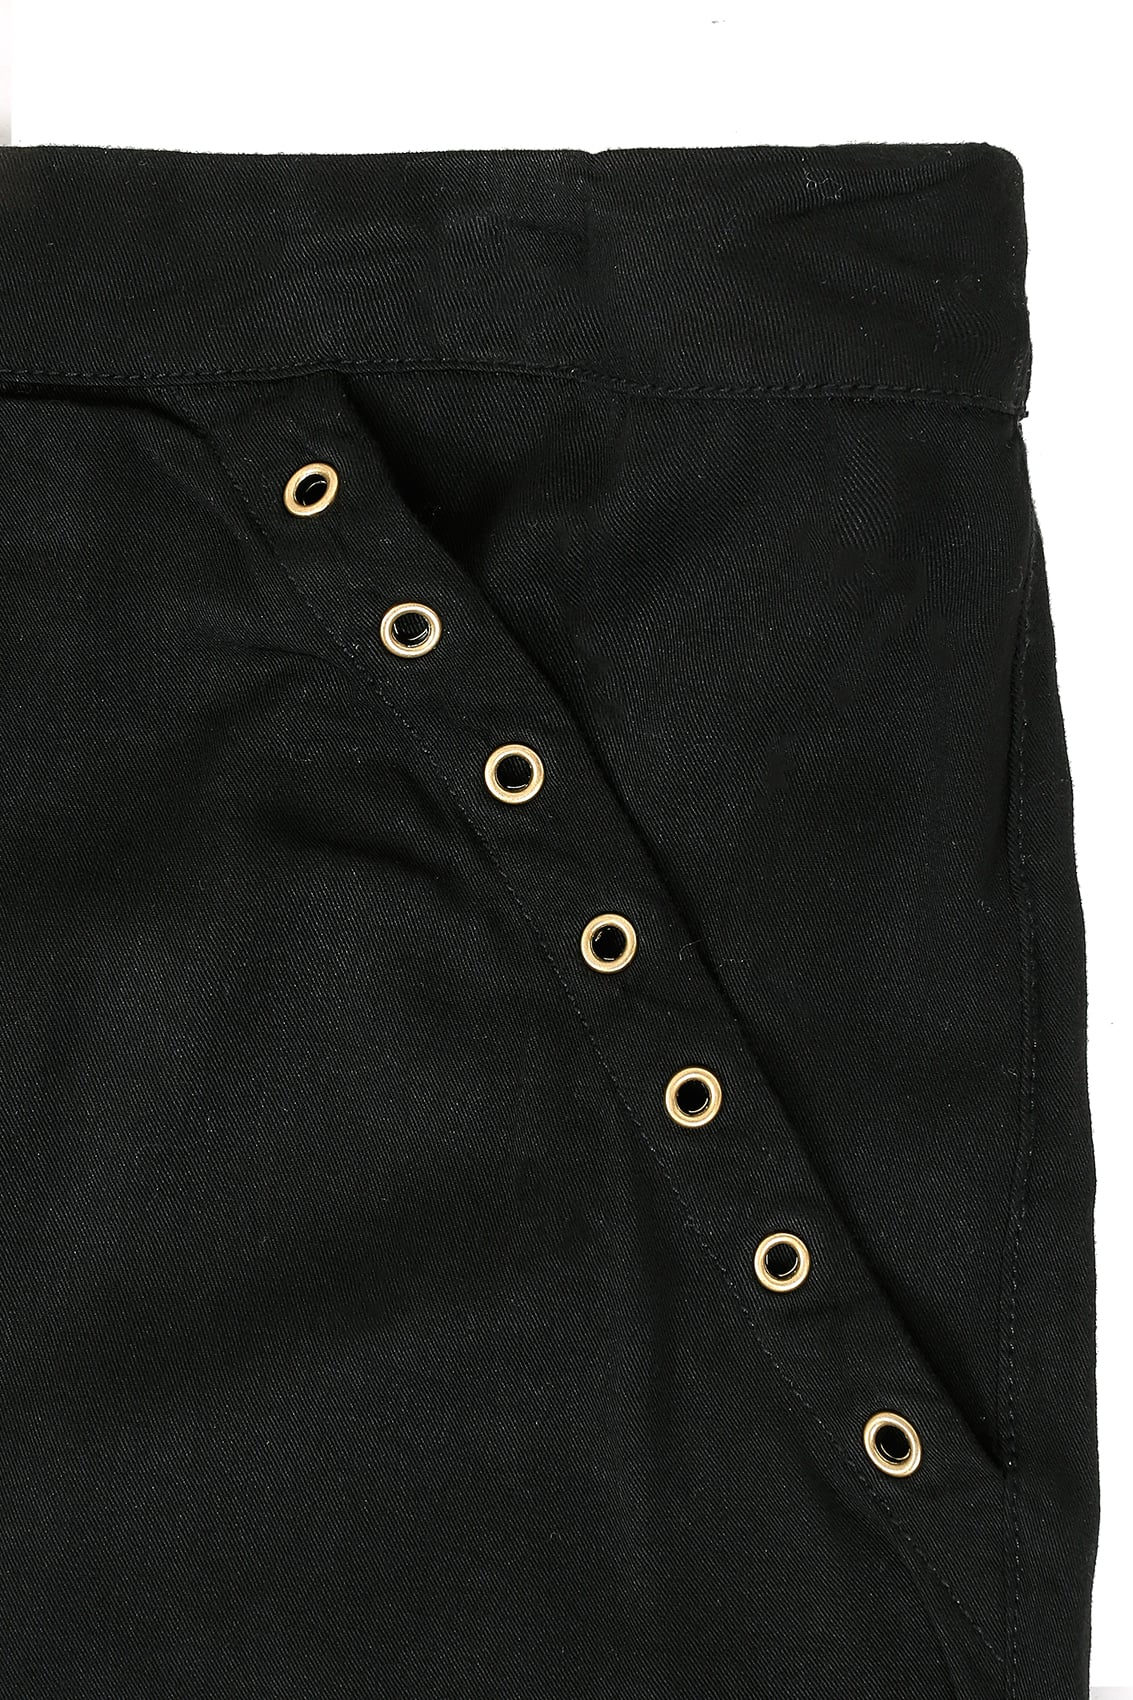 Black Harem Trousers With Gold Eyelet Detail & Pockets ...